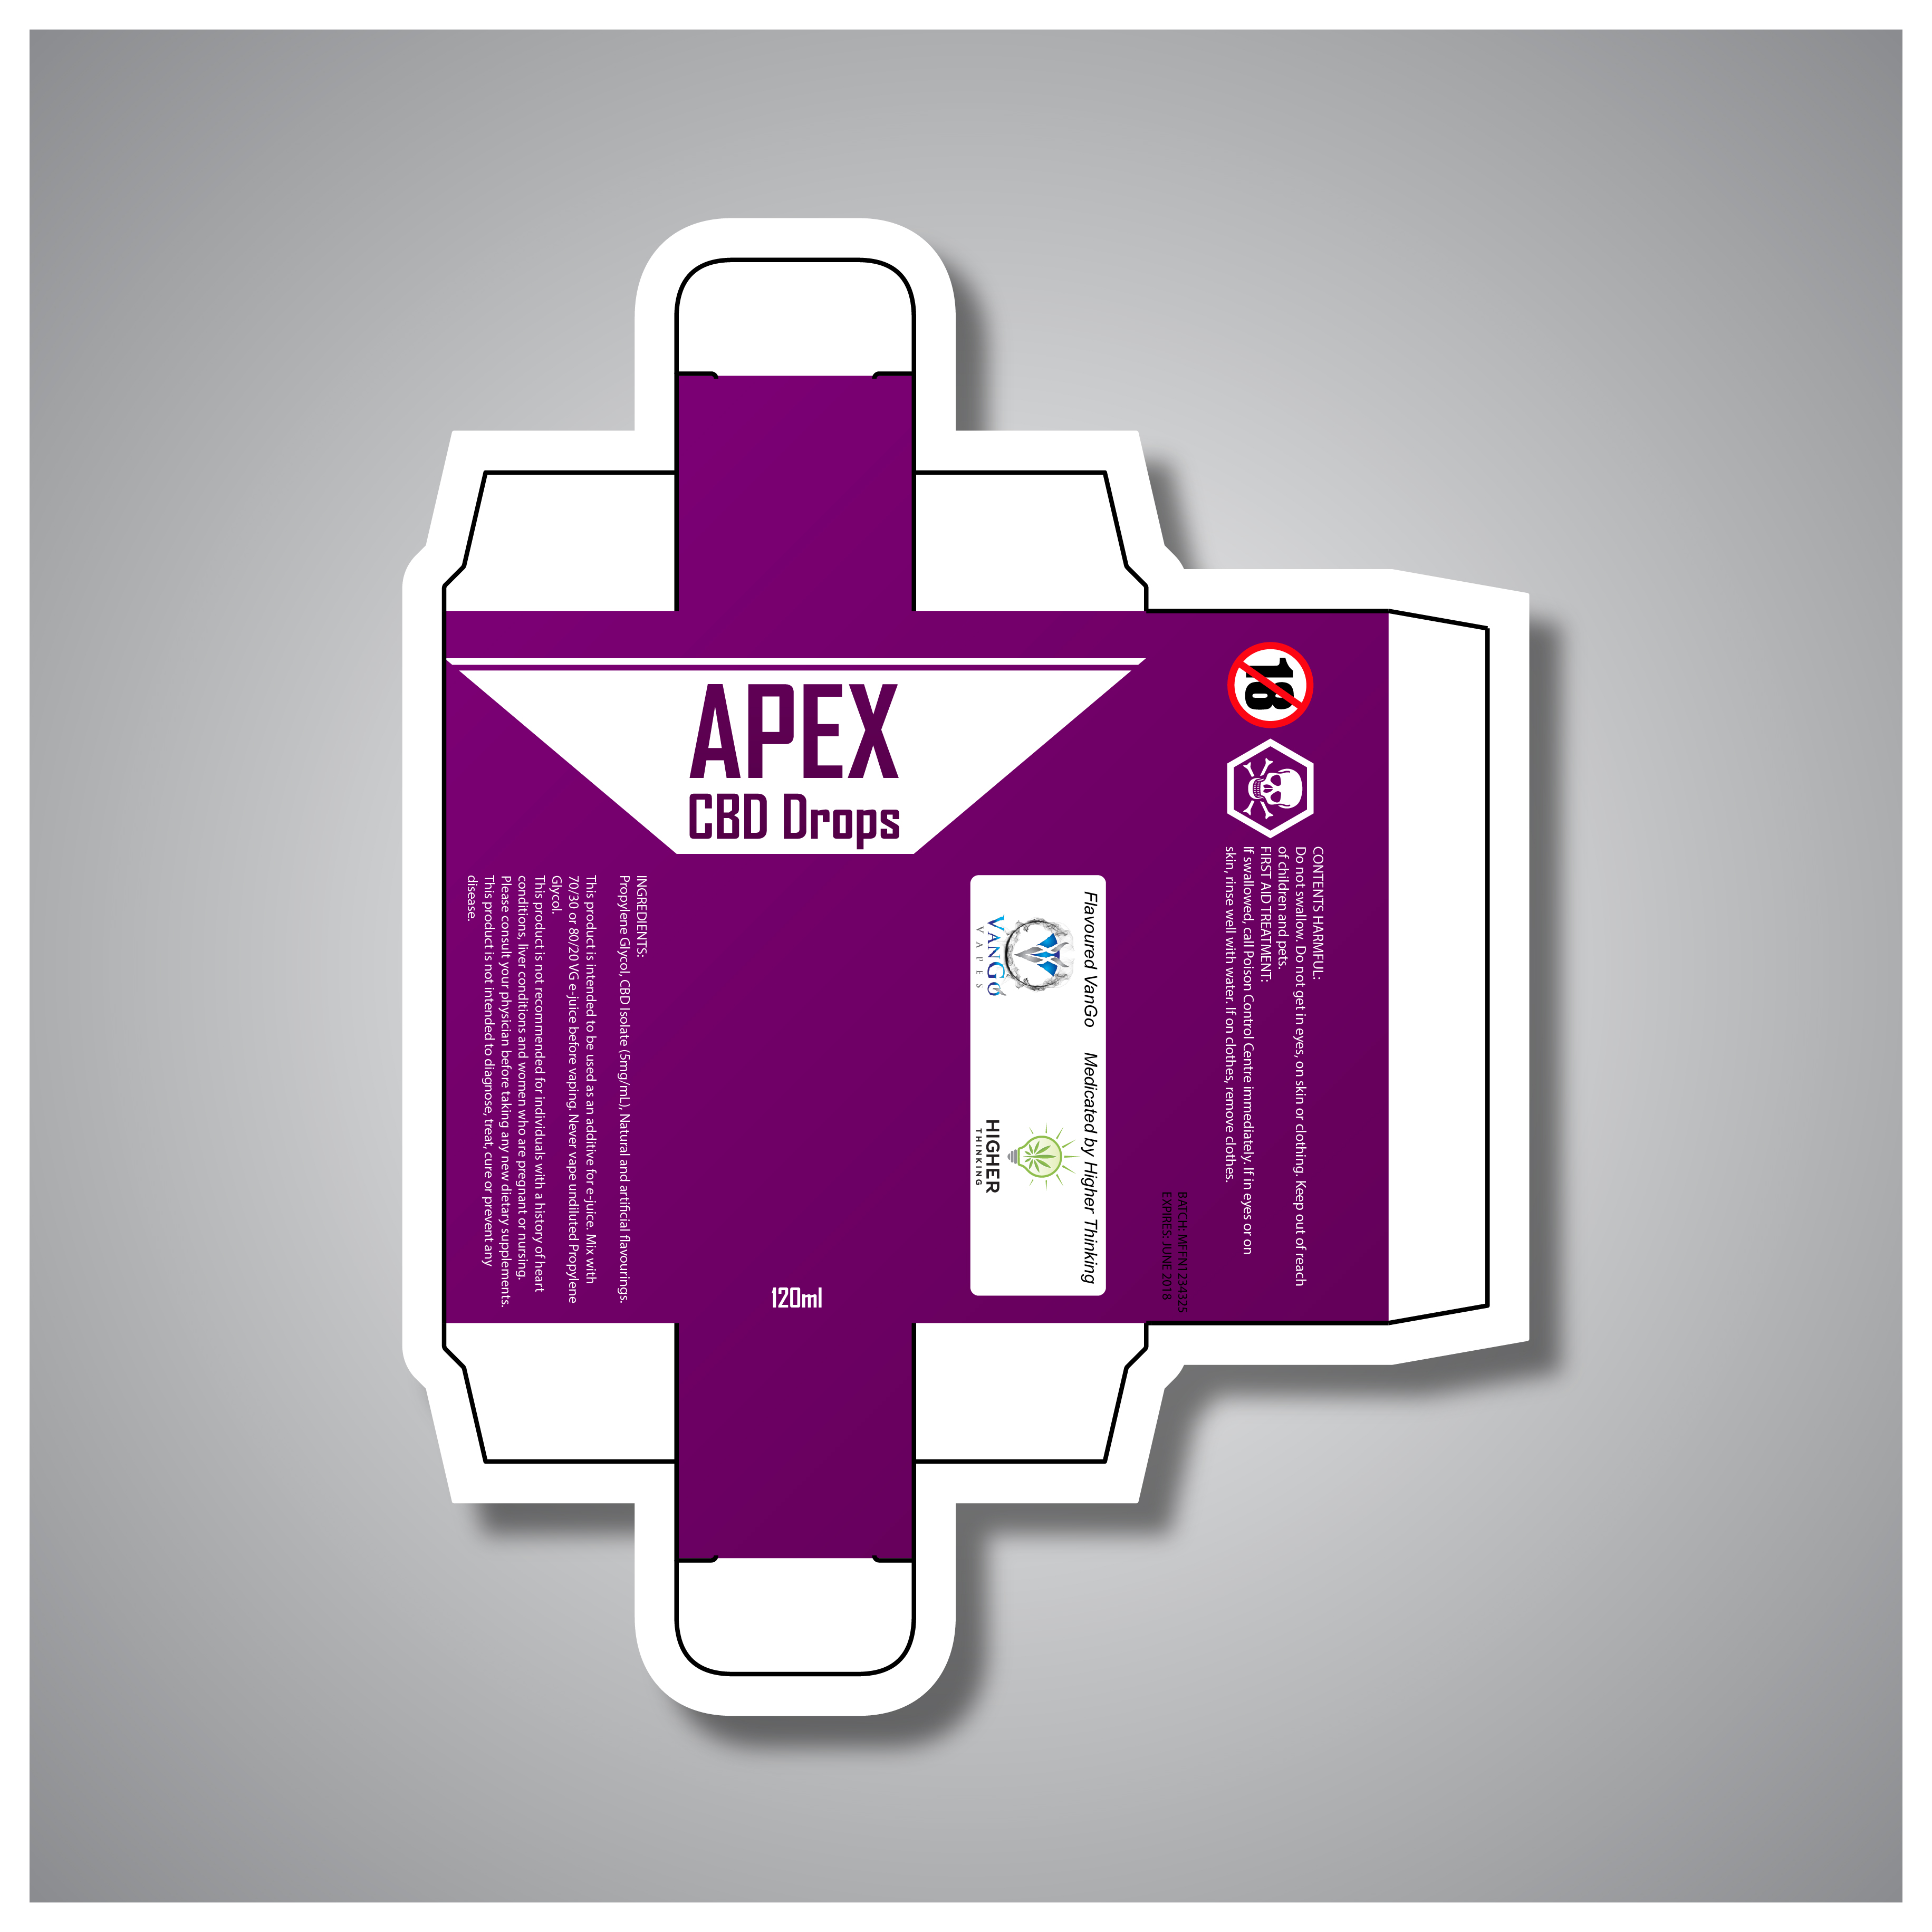 Packaging Design by chAnDOS - Entry No. 1 in the Packaging Design Contest Packaging Design for Apex CBD Drops!.